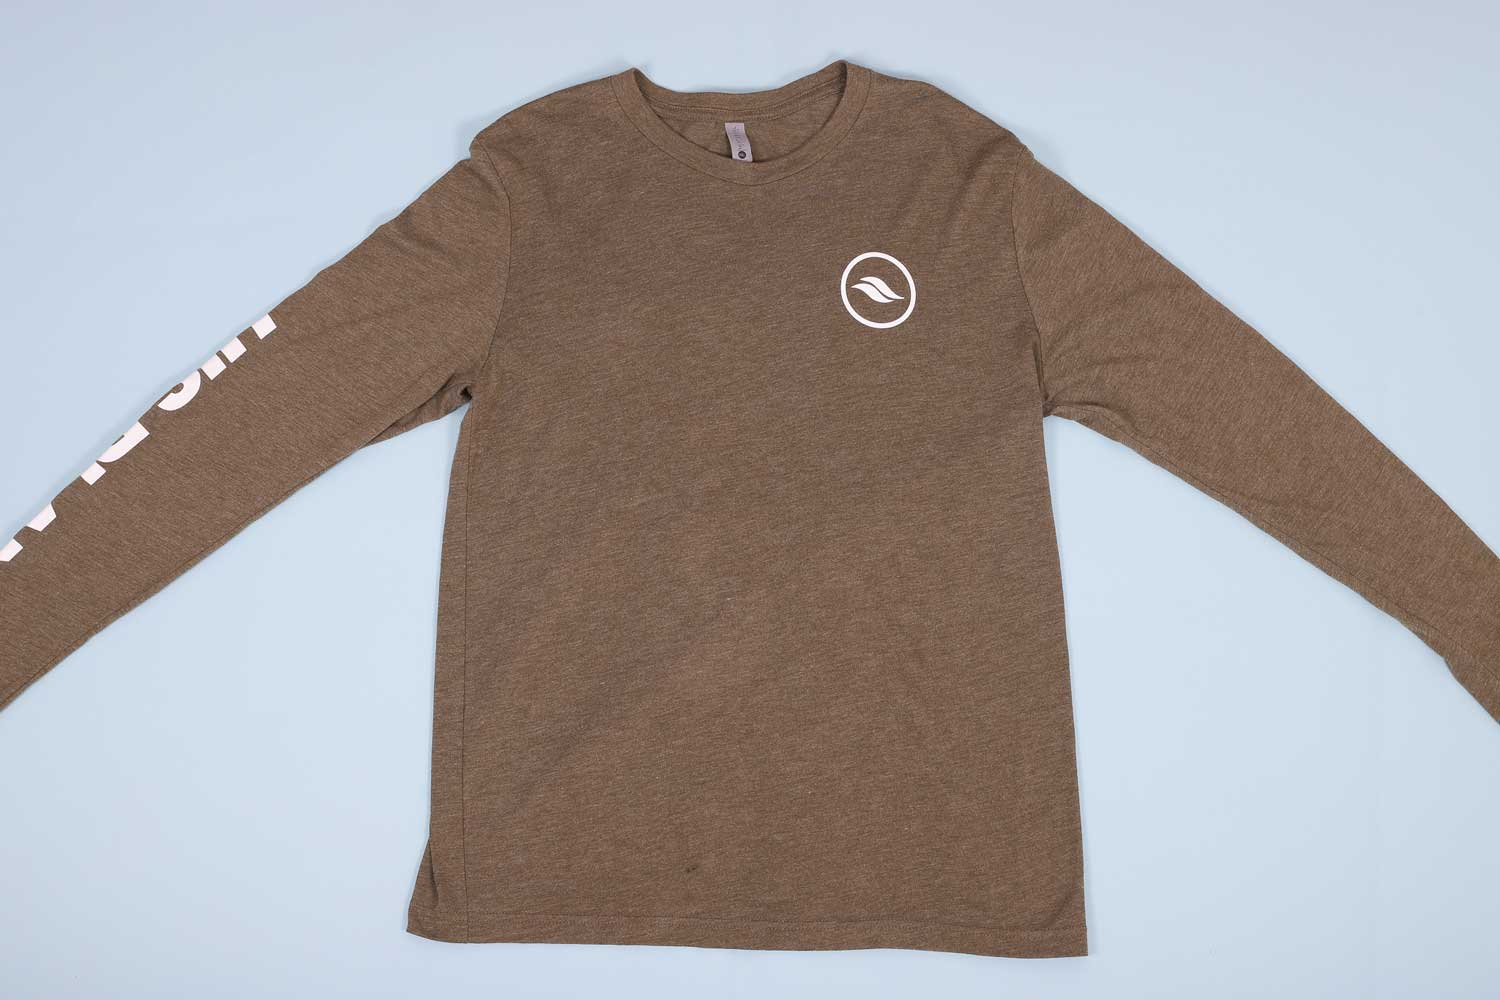 Olive long sleeve t-shirt laying out flat on a light blue background